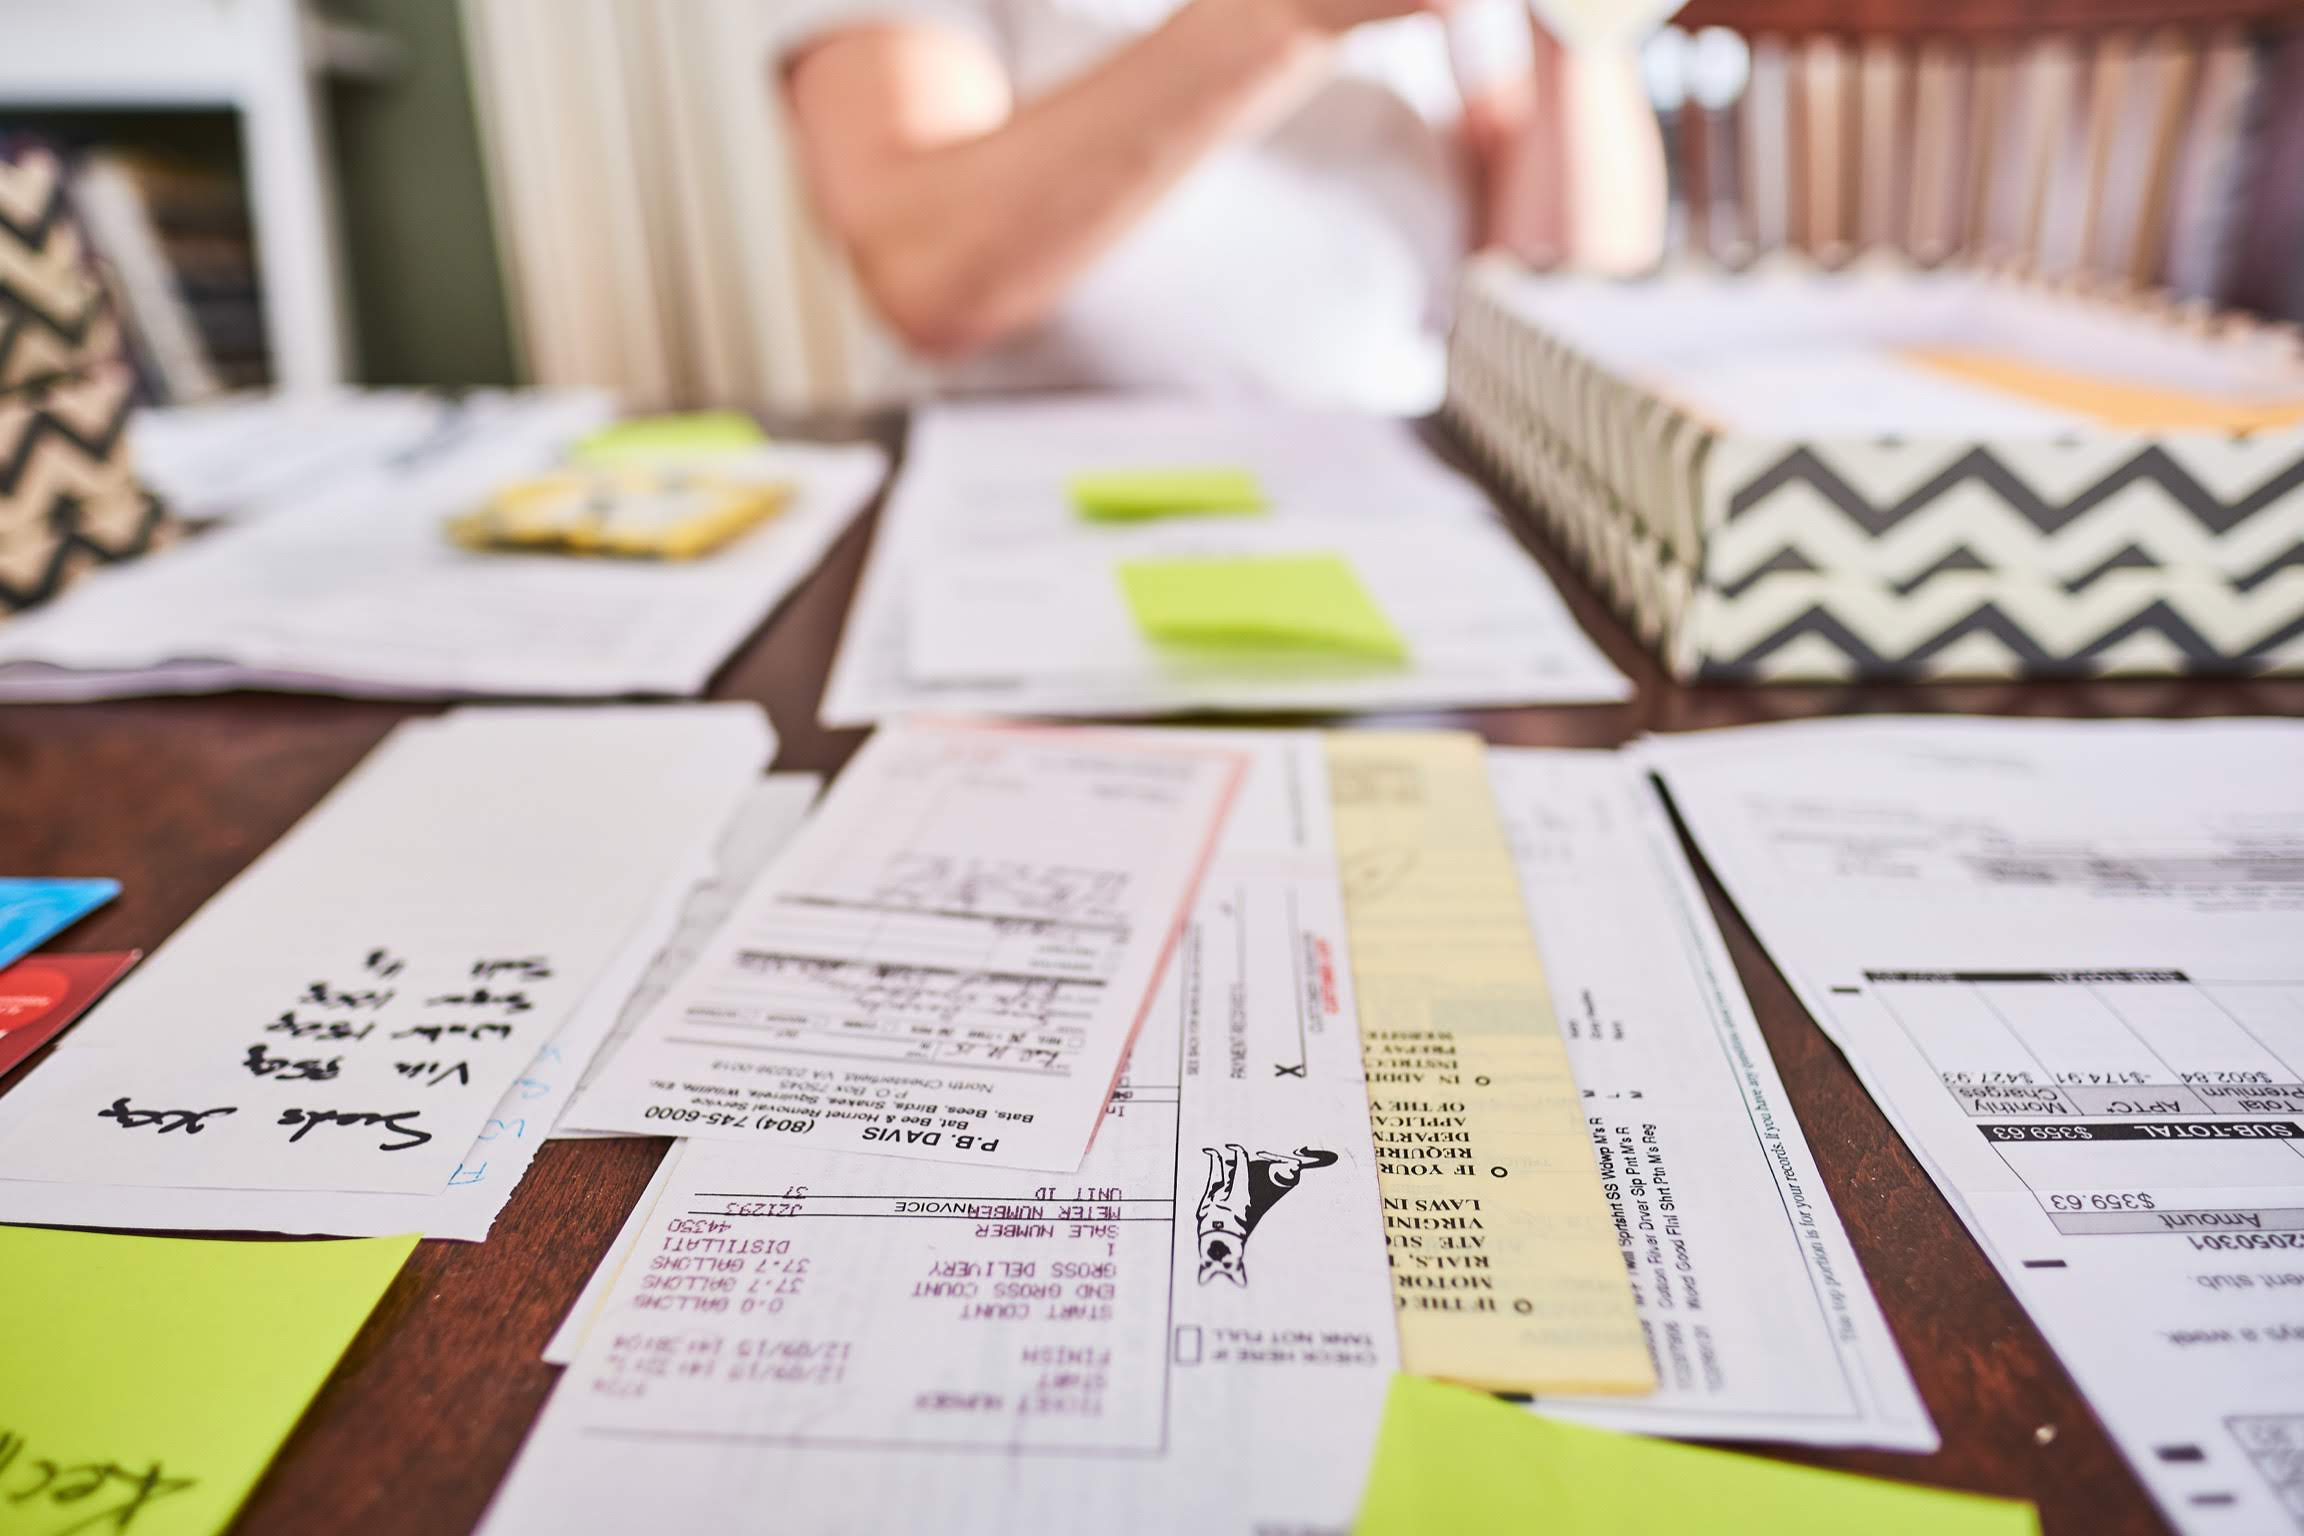 Sorted piles of paper on table